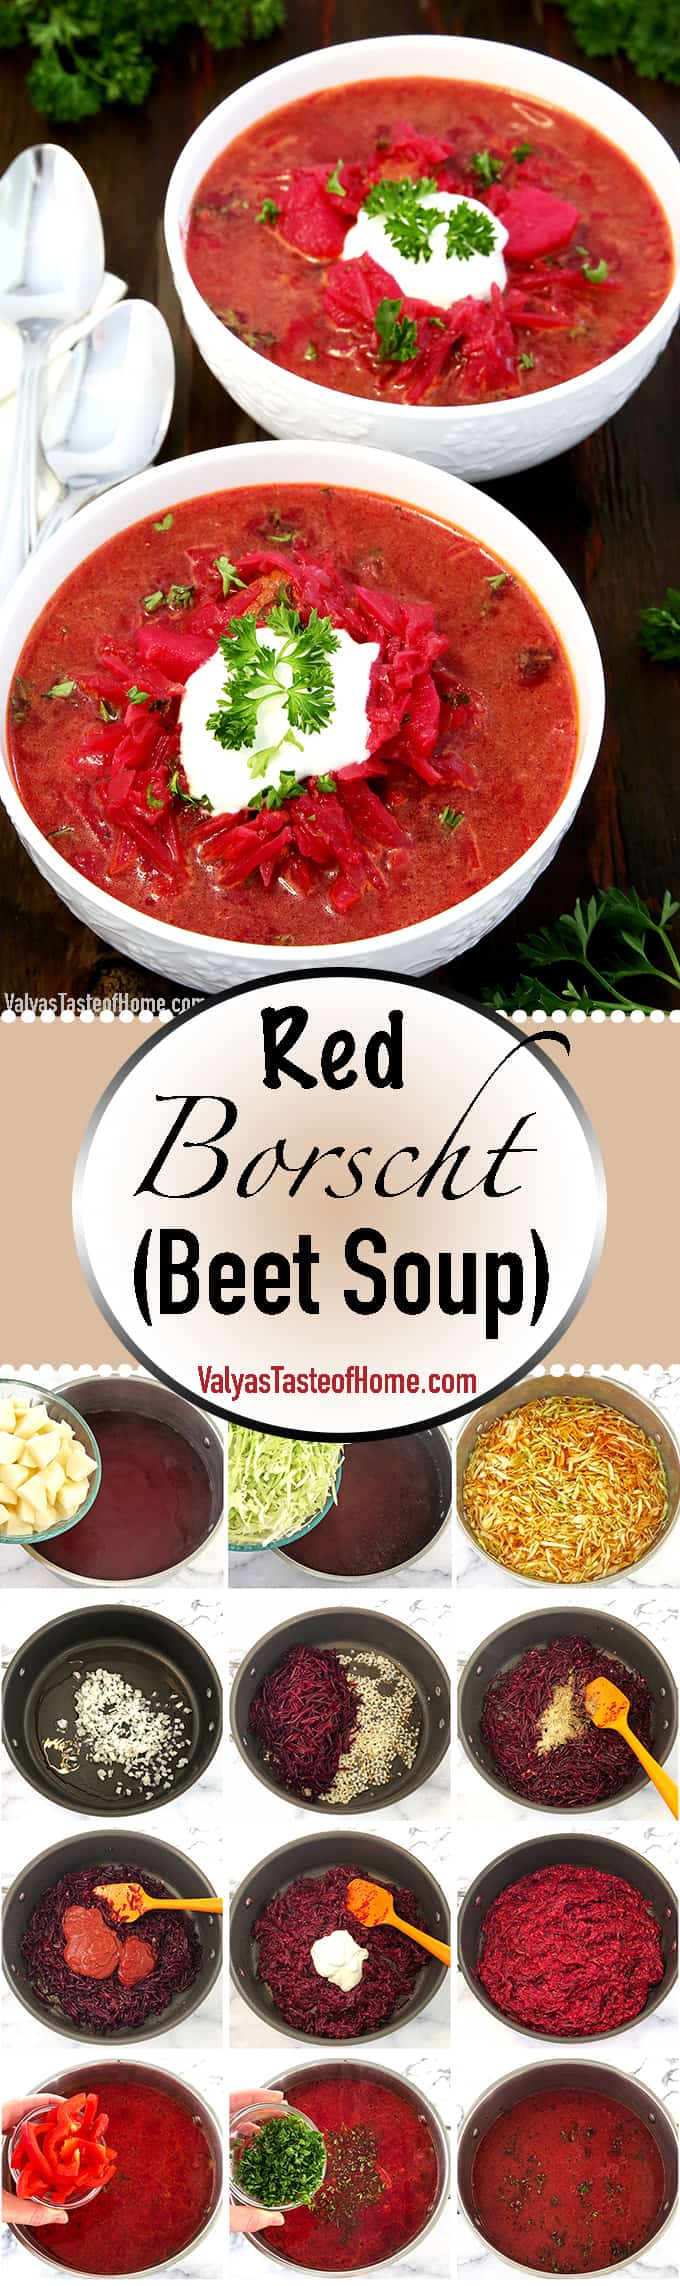 What are some of the foods that come to mind if you had to name a few Ukrainian meals quickly? I bet Red Borscht Recipe would pop into your mind. That's because it's one of the top iconic foods of Eastern and Central Europe.